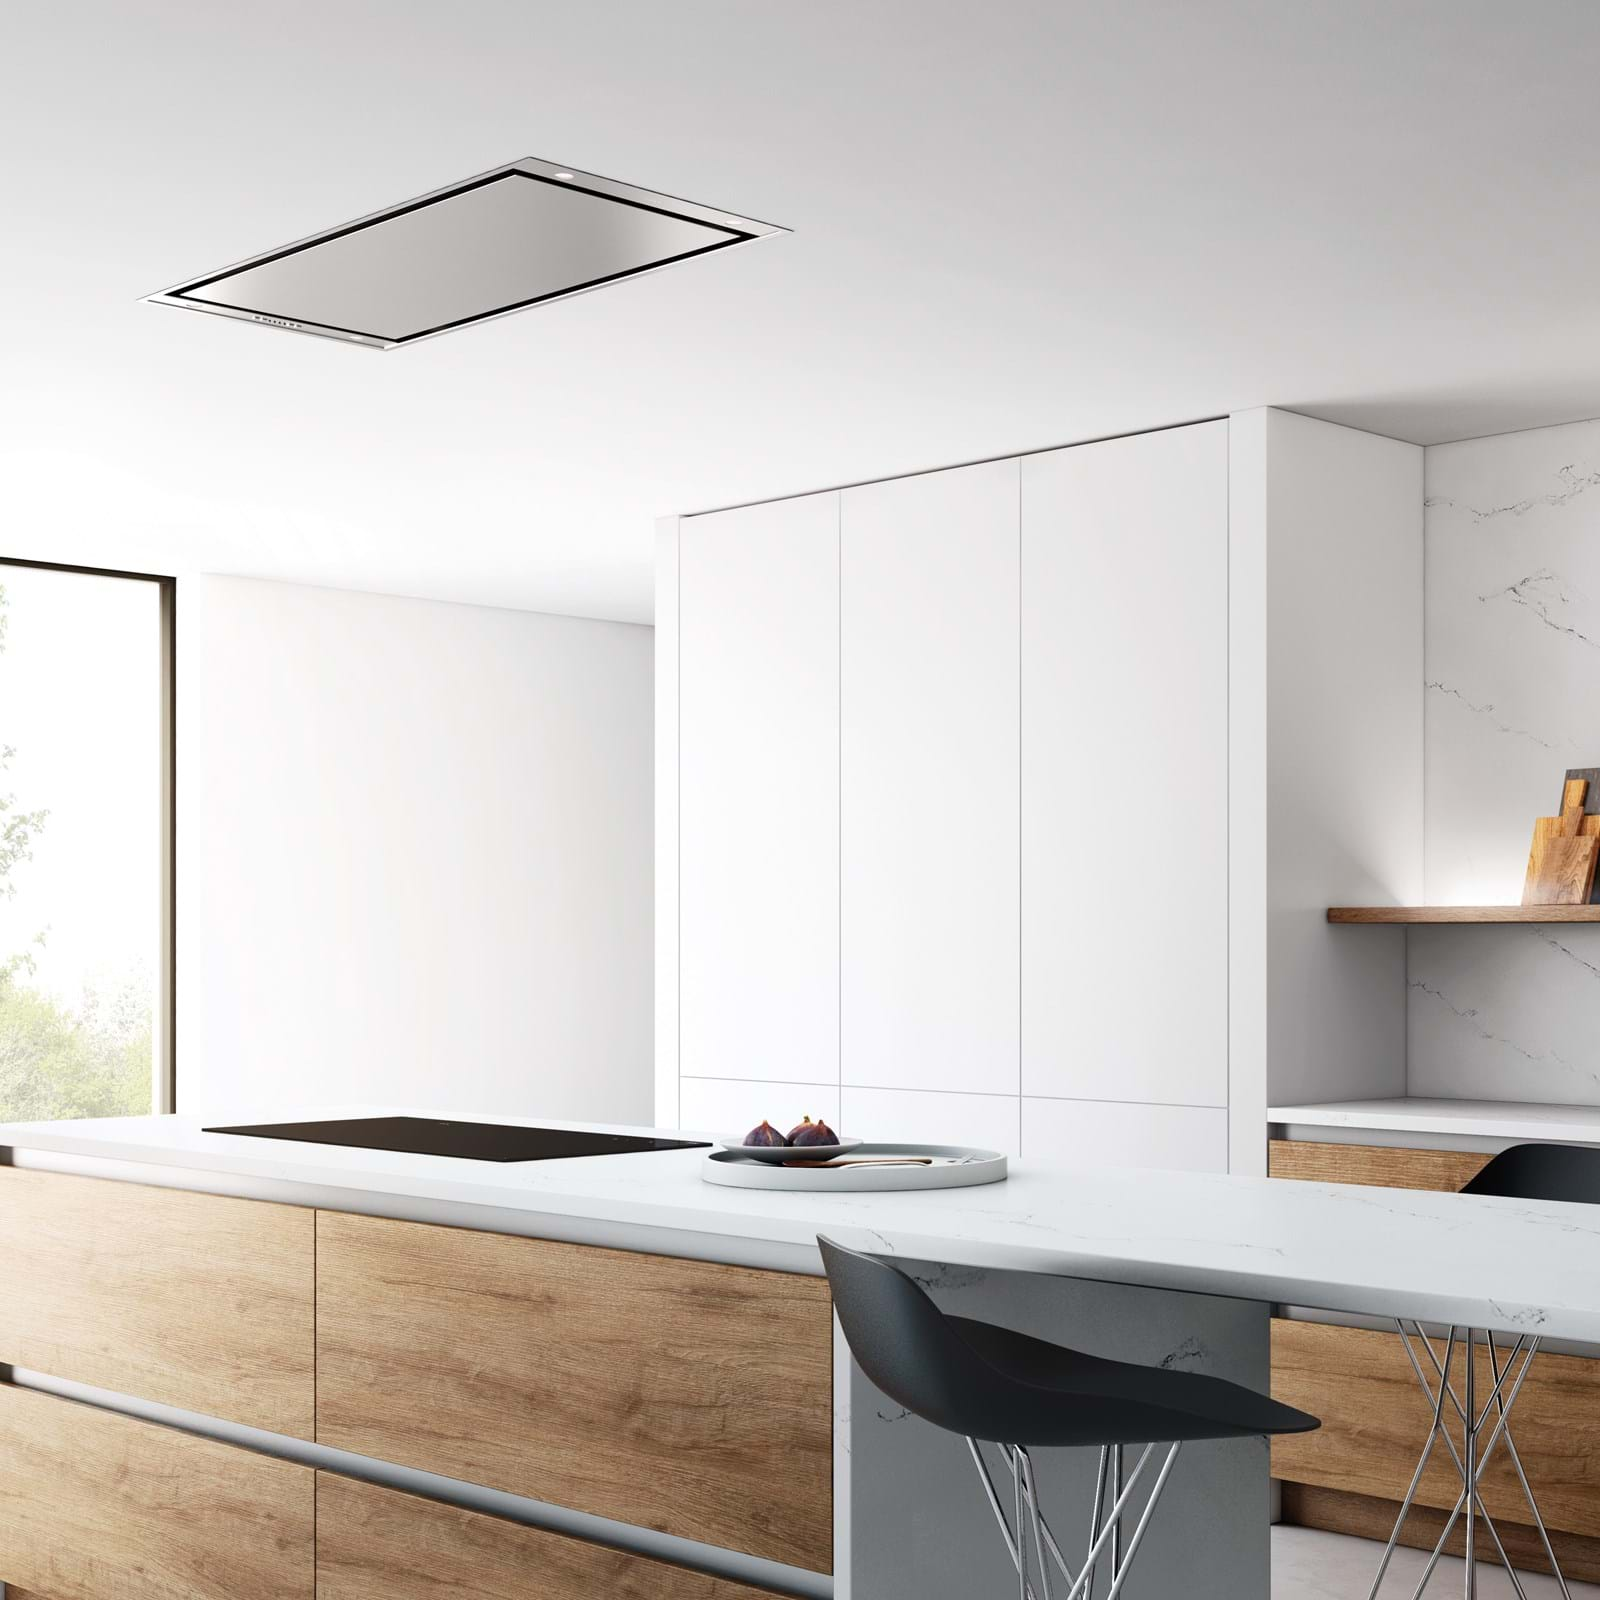 Cappe a soffitto